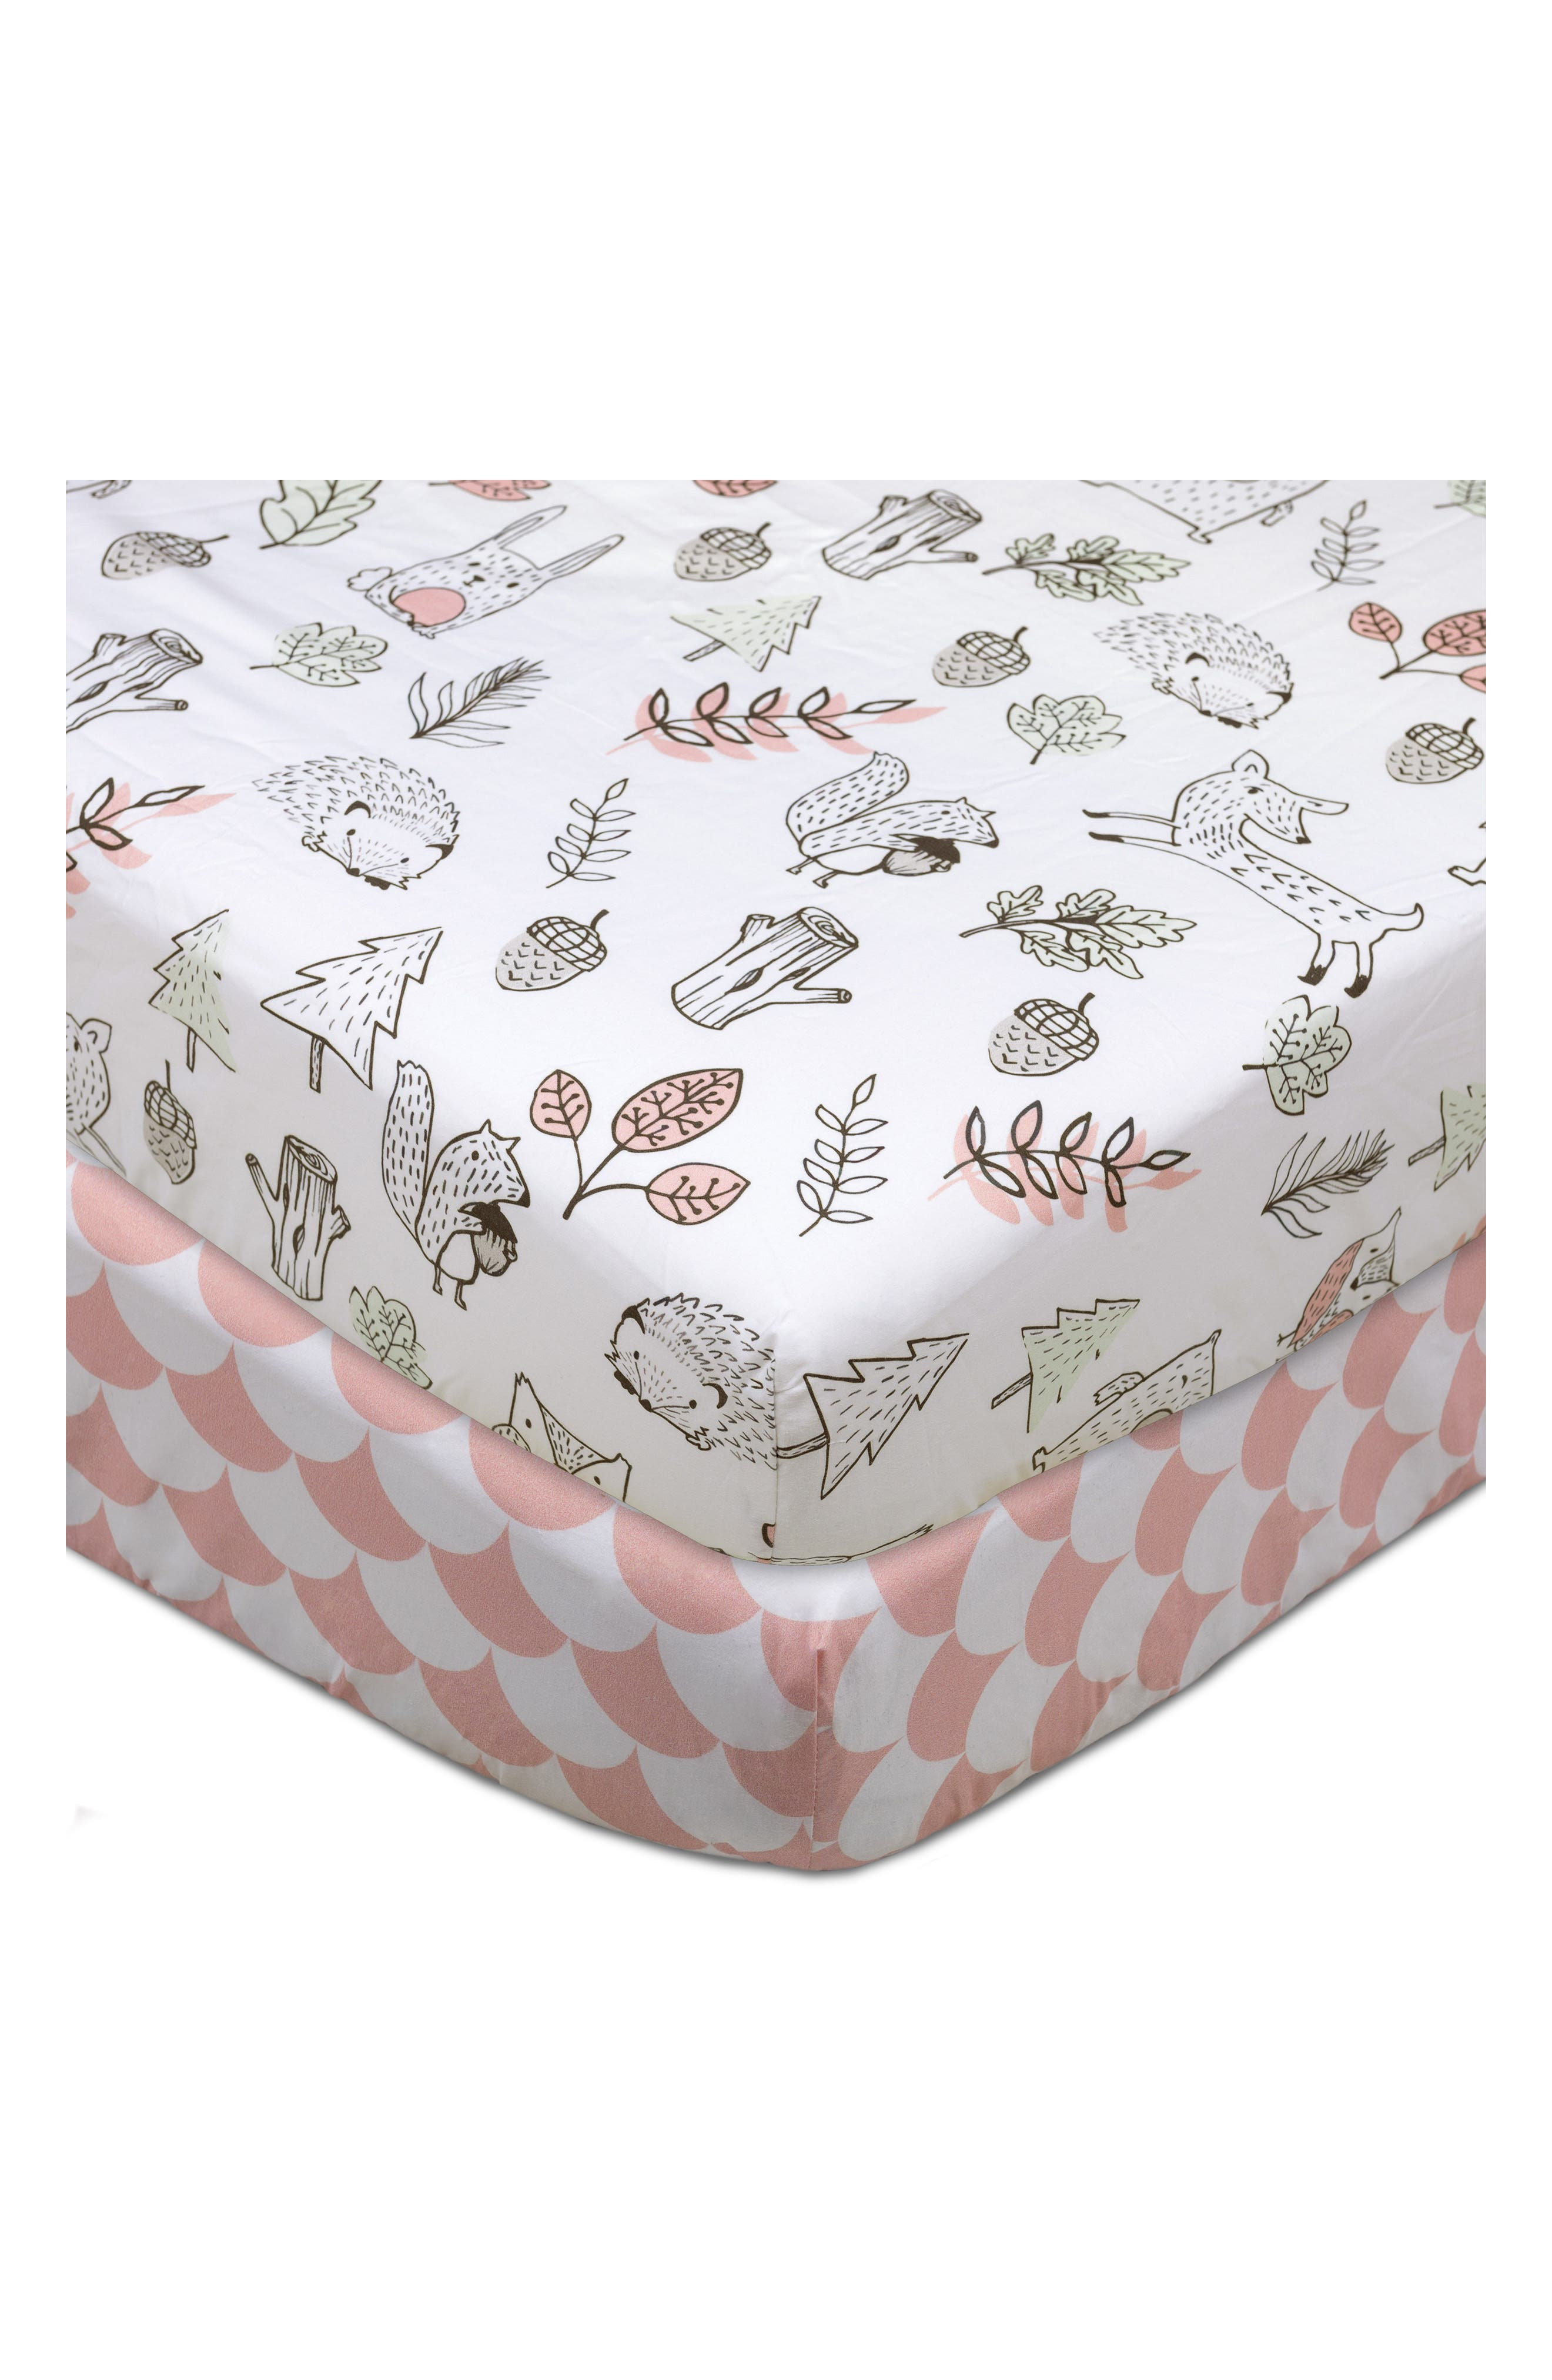 Alternate Image 1 Selected - Living Textiles Kayden 200 Thread Count Set of 2 Fitted Crib Sheets